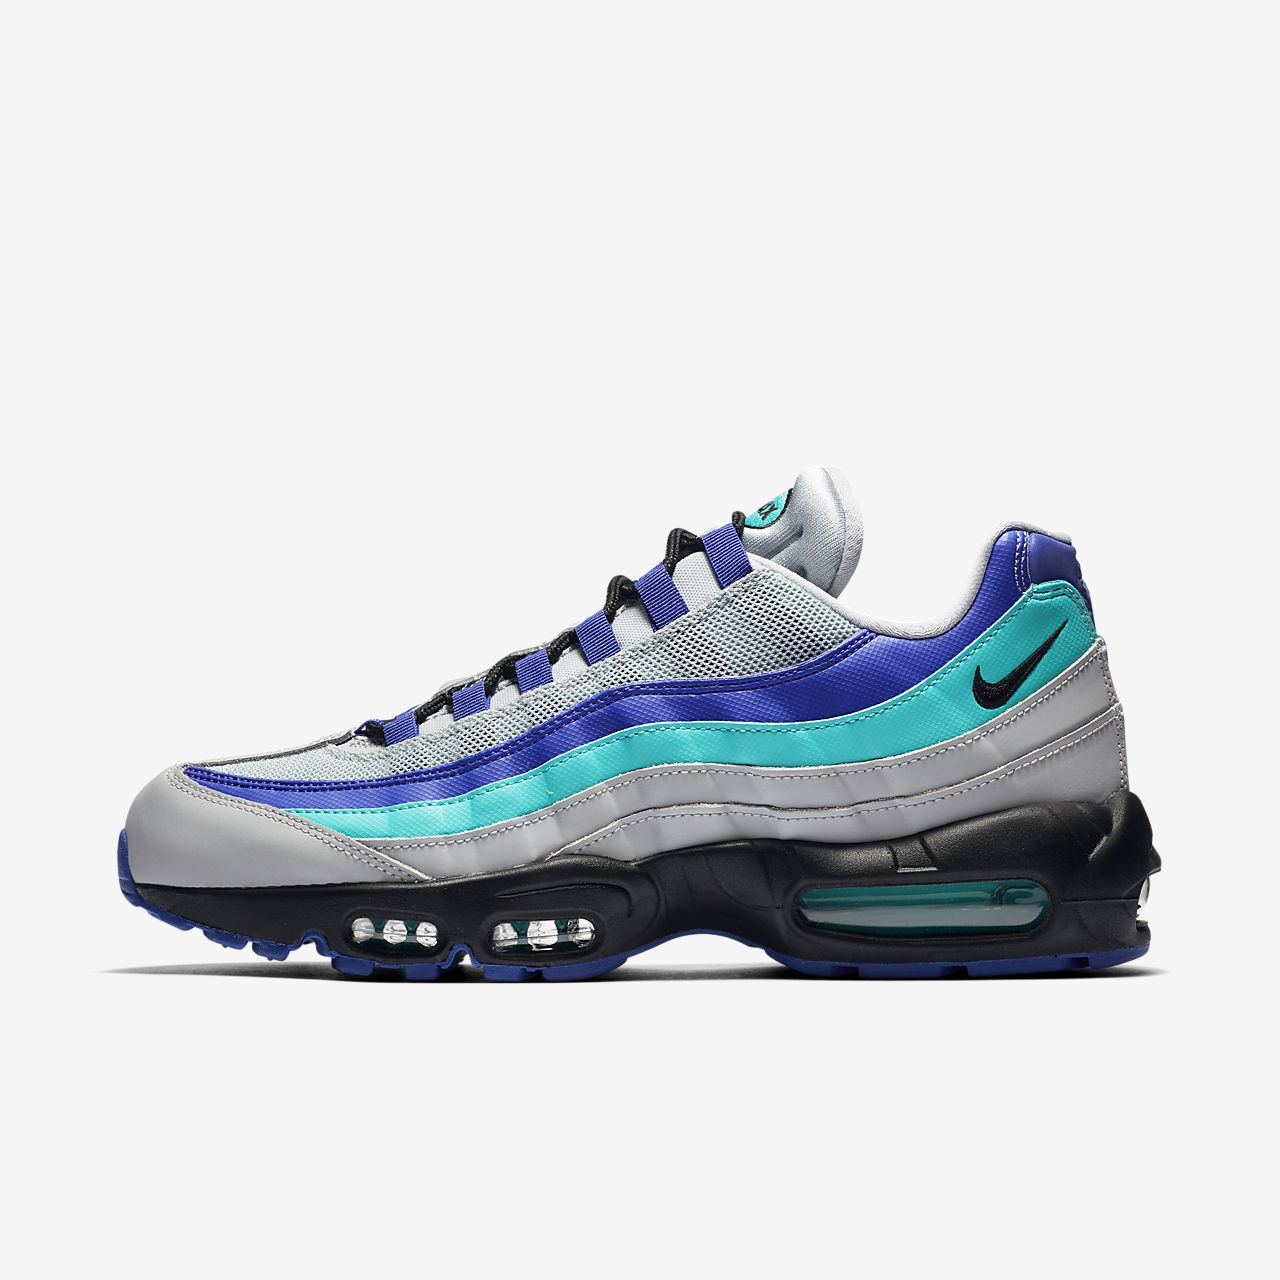 watch 5aea8 f25e4 ... Nike Air Max 95 OG Shoe